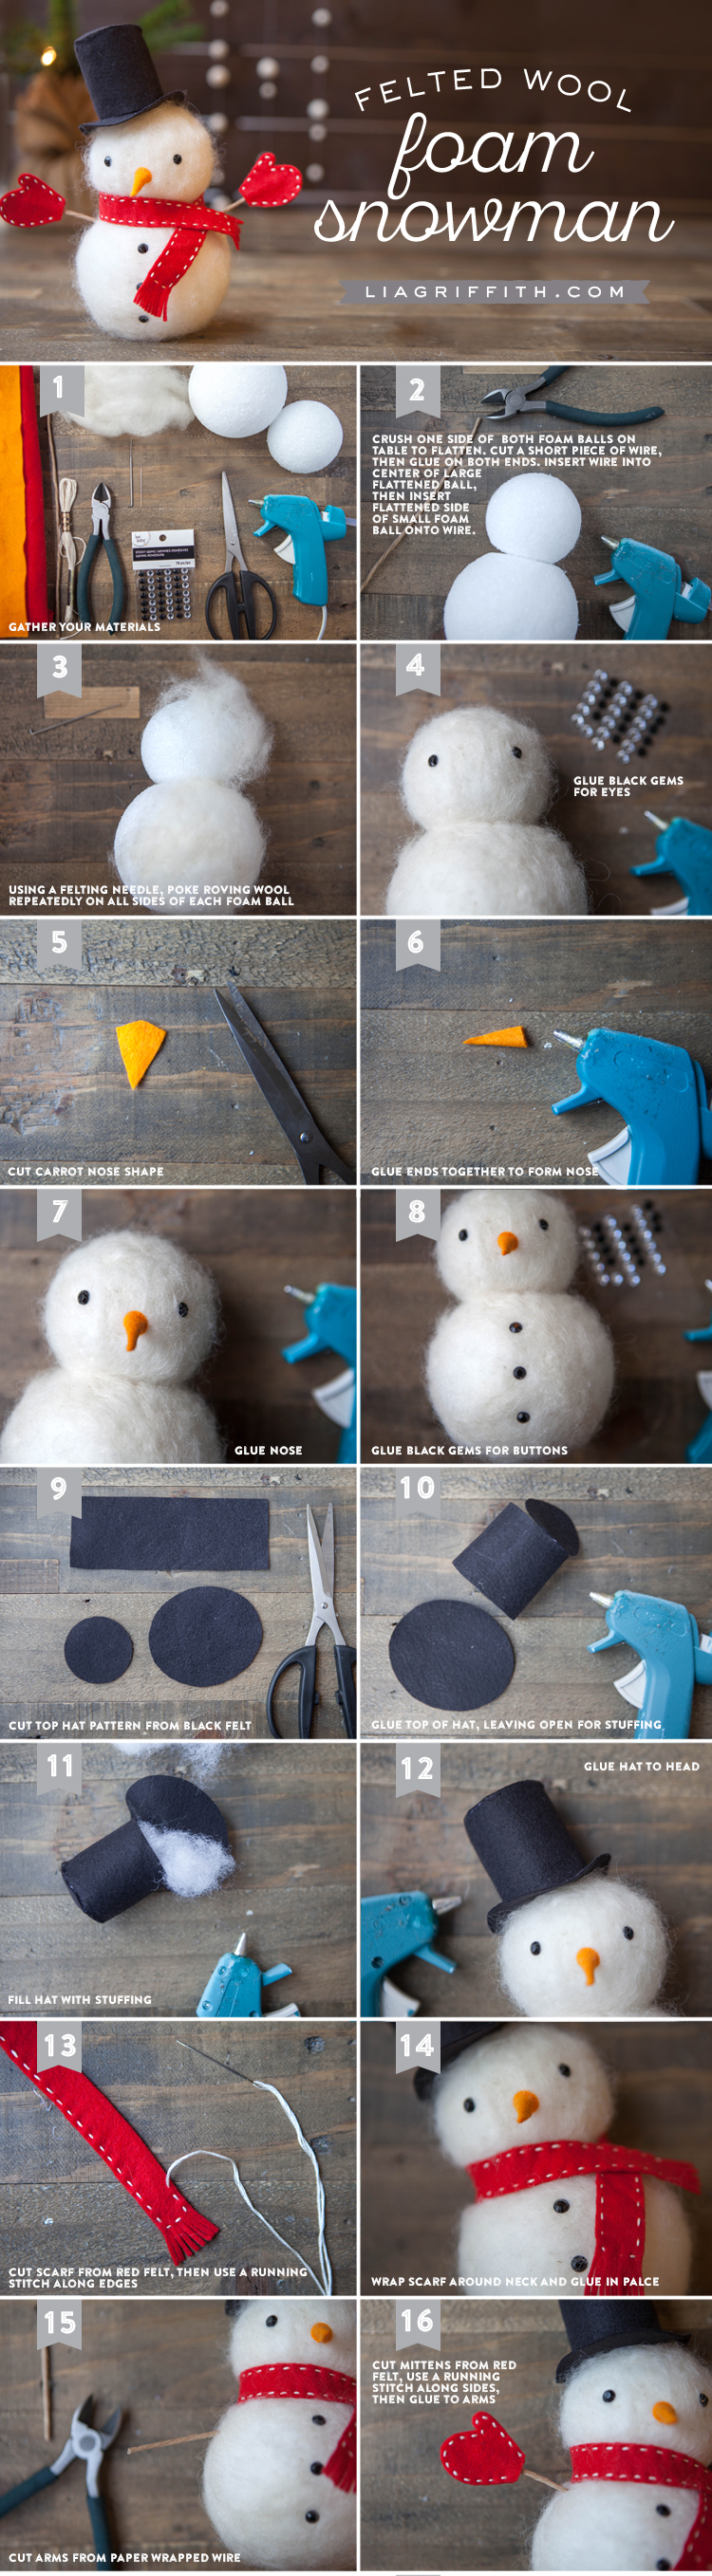 Snowman crafts - felted snowman tutorial